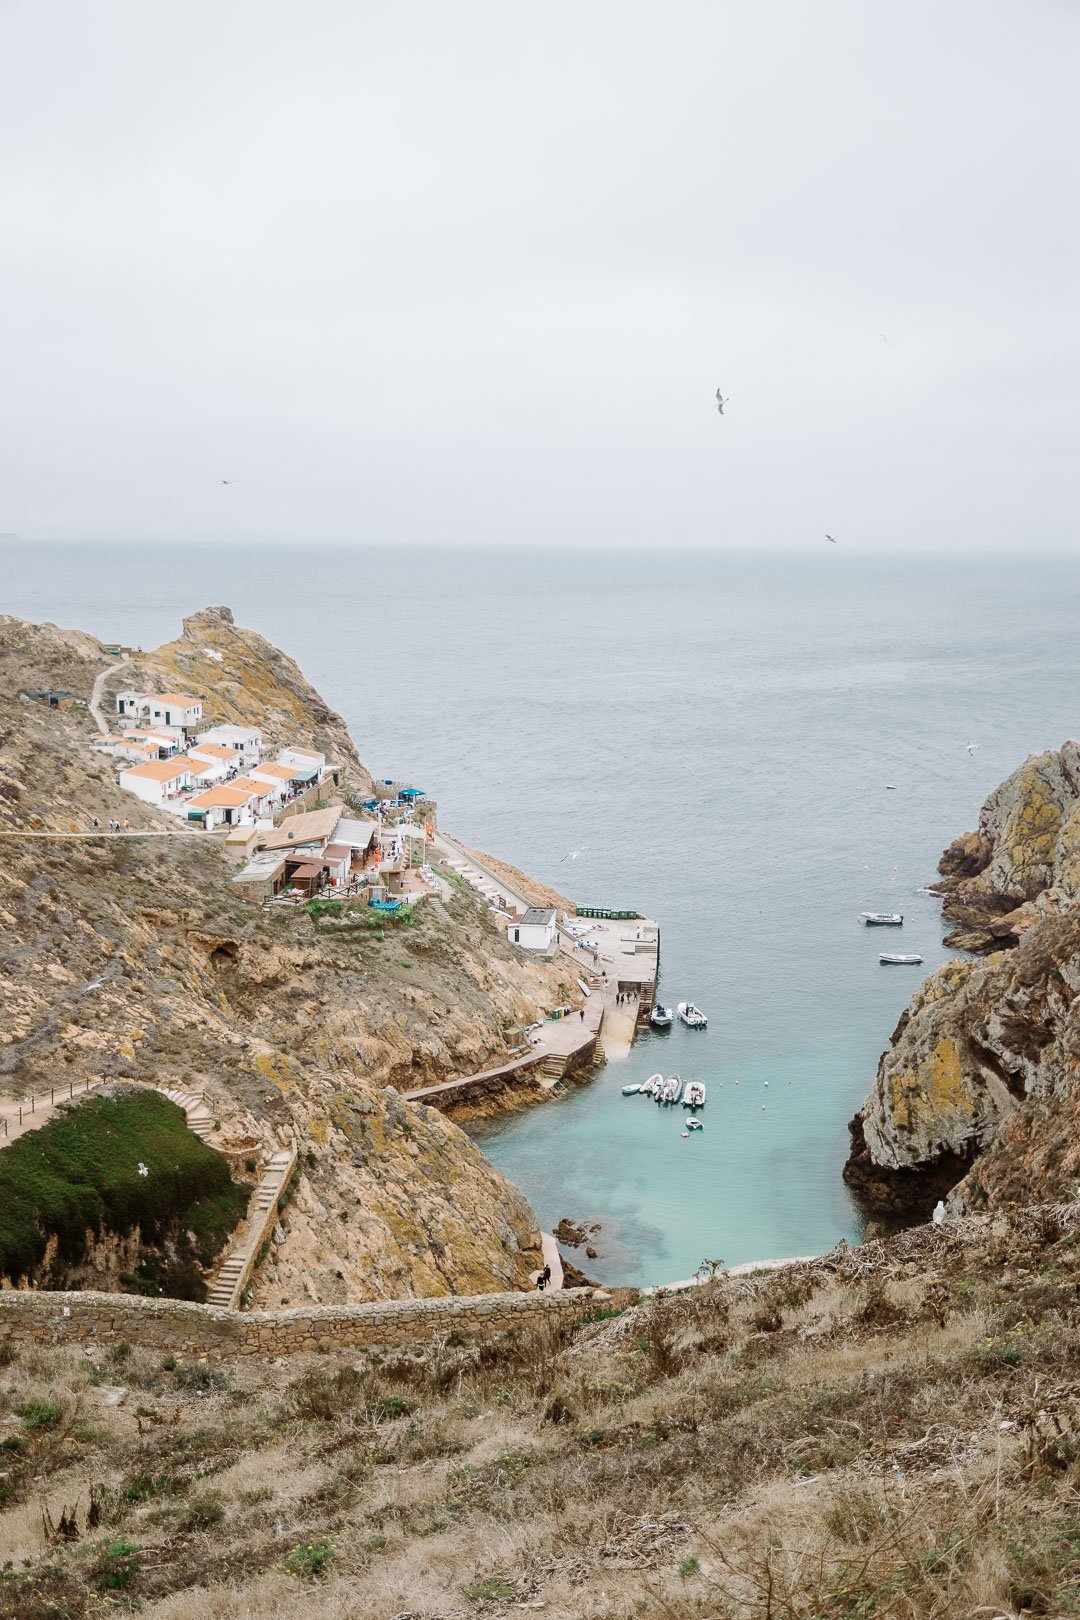 The view from the camping site looking down on the Berlenga Grande fishing harbour and Berlenga beach